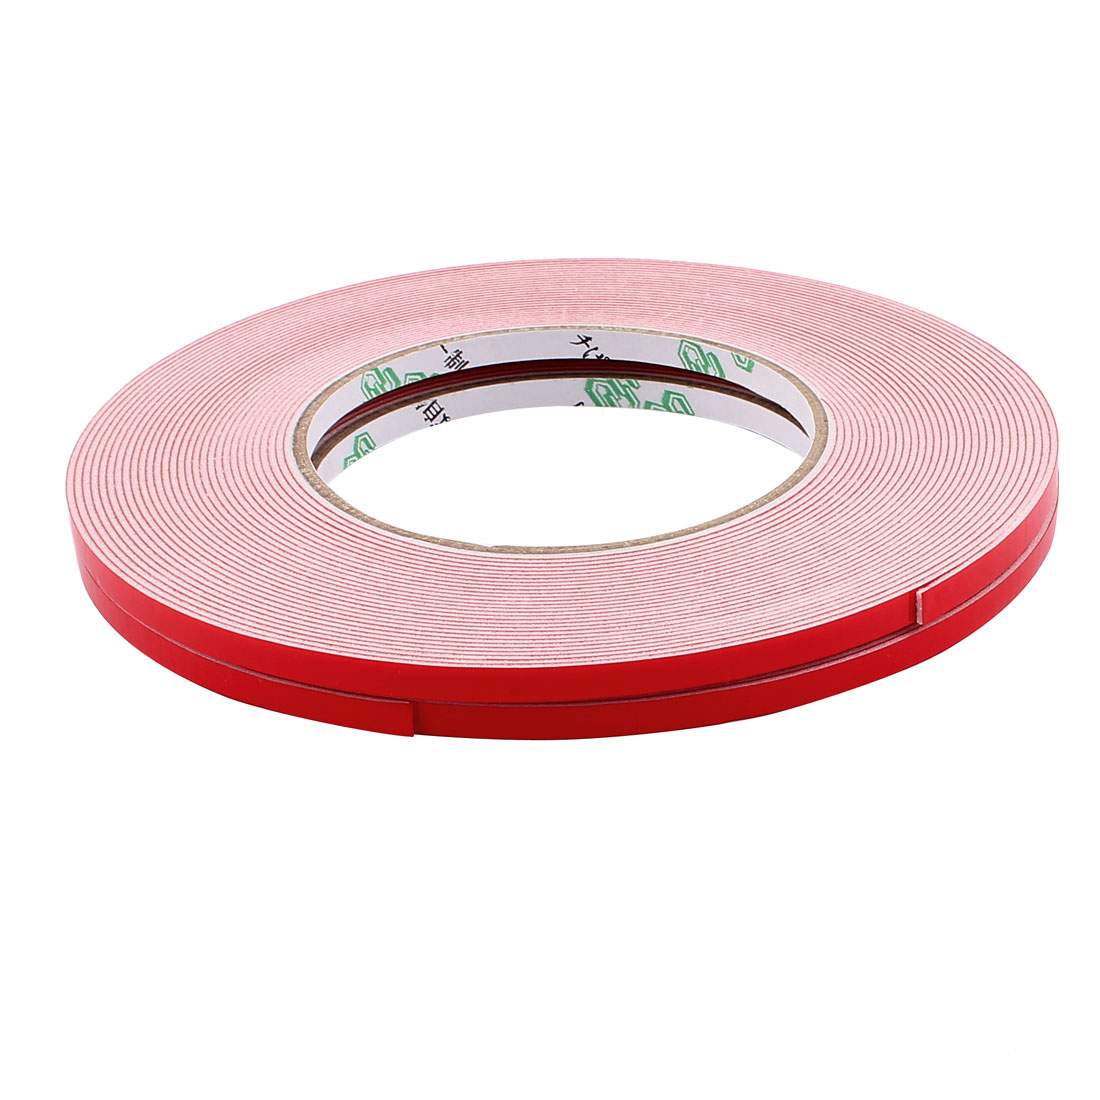 2 Pcs 5mmx1mm Double Sided Sponge Tape Adhesive Sticker Foam Glue Strip Sealing 10 Meters 33Ft